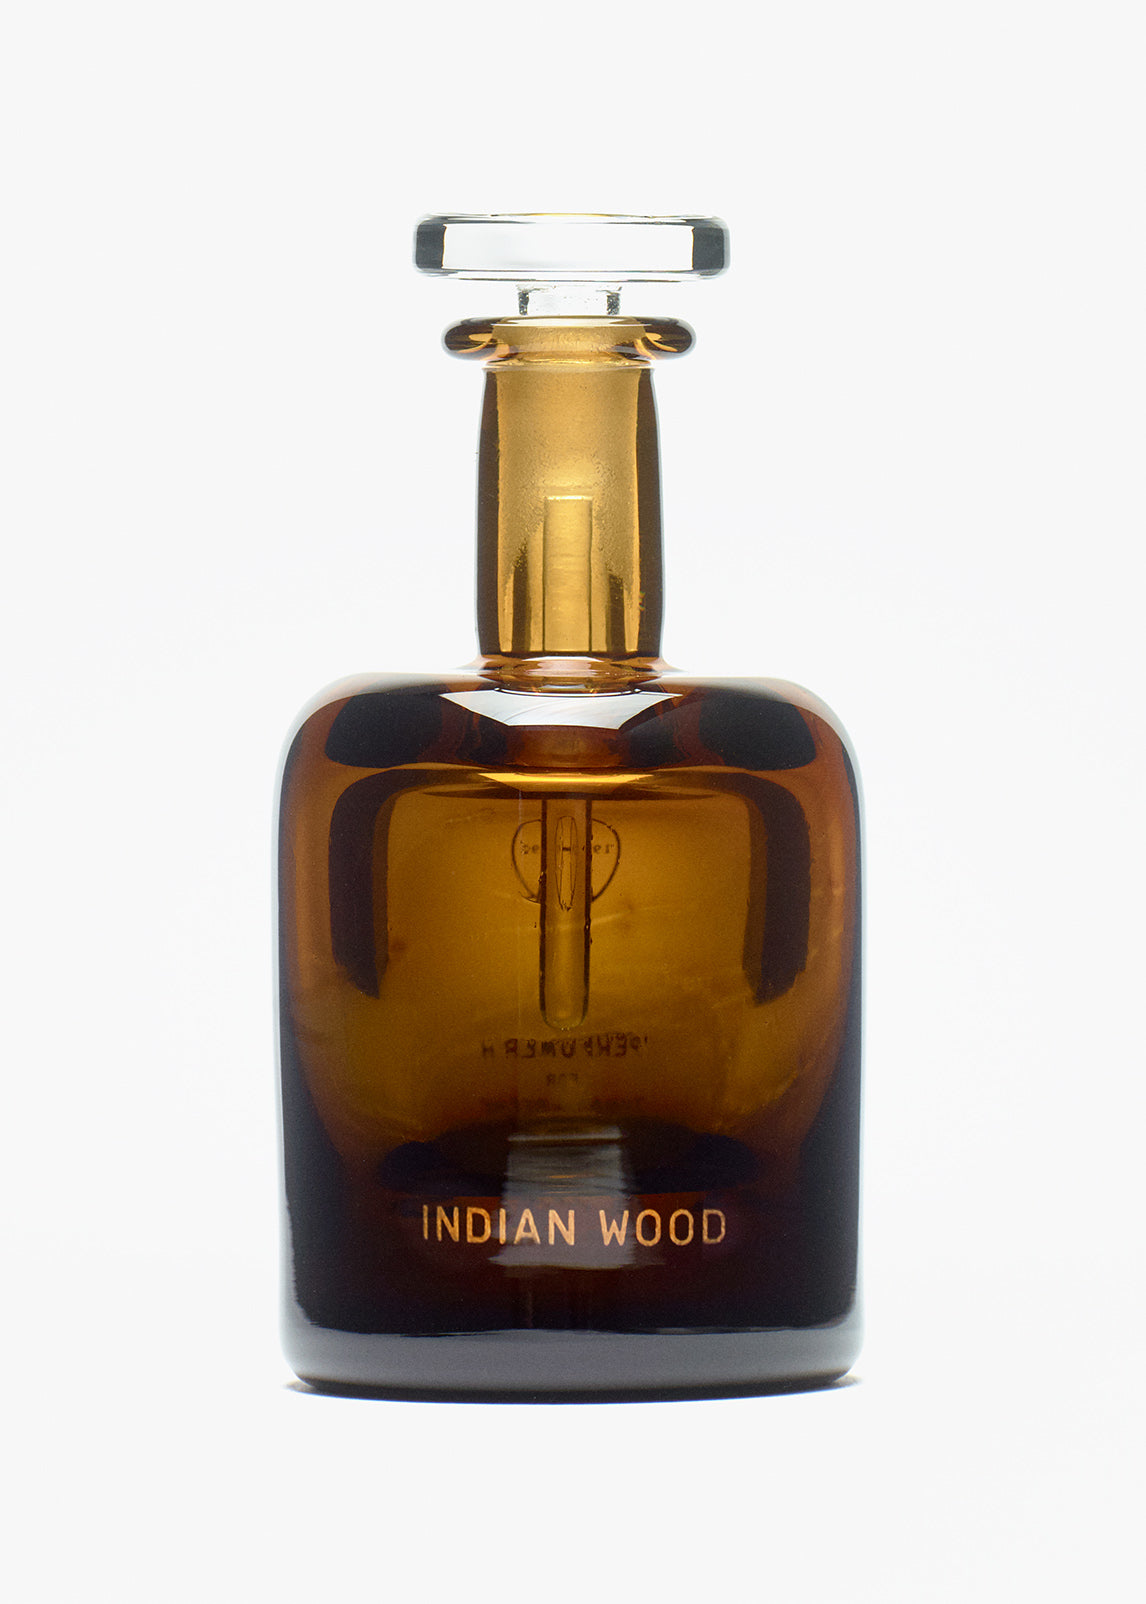 Indian Wood Eau de Parfum